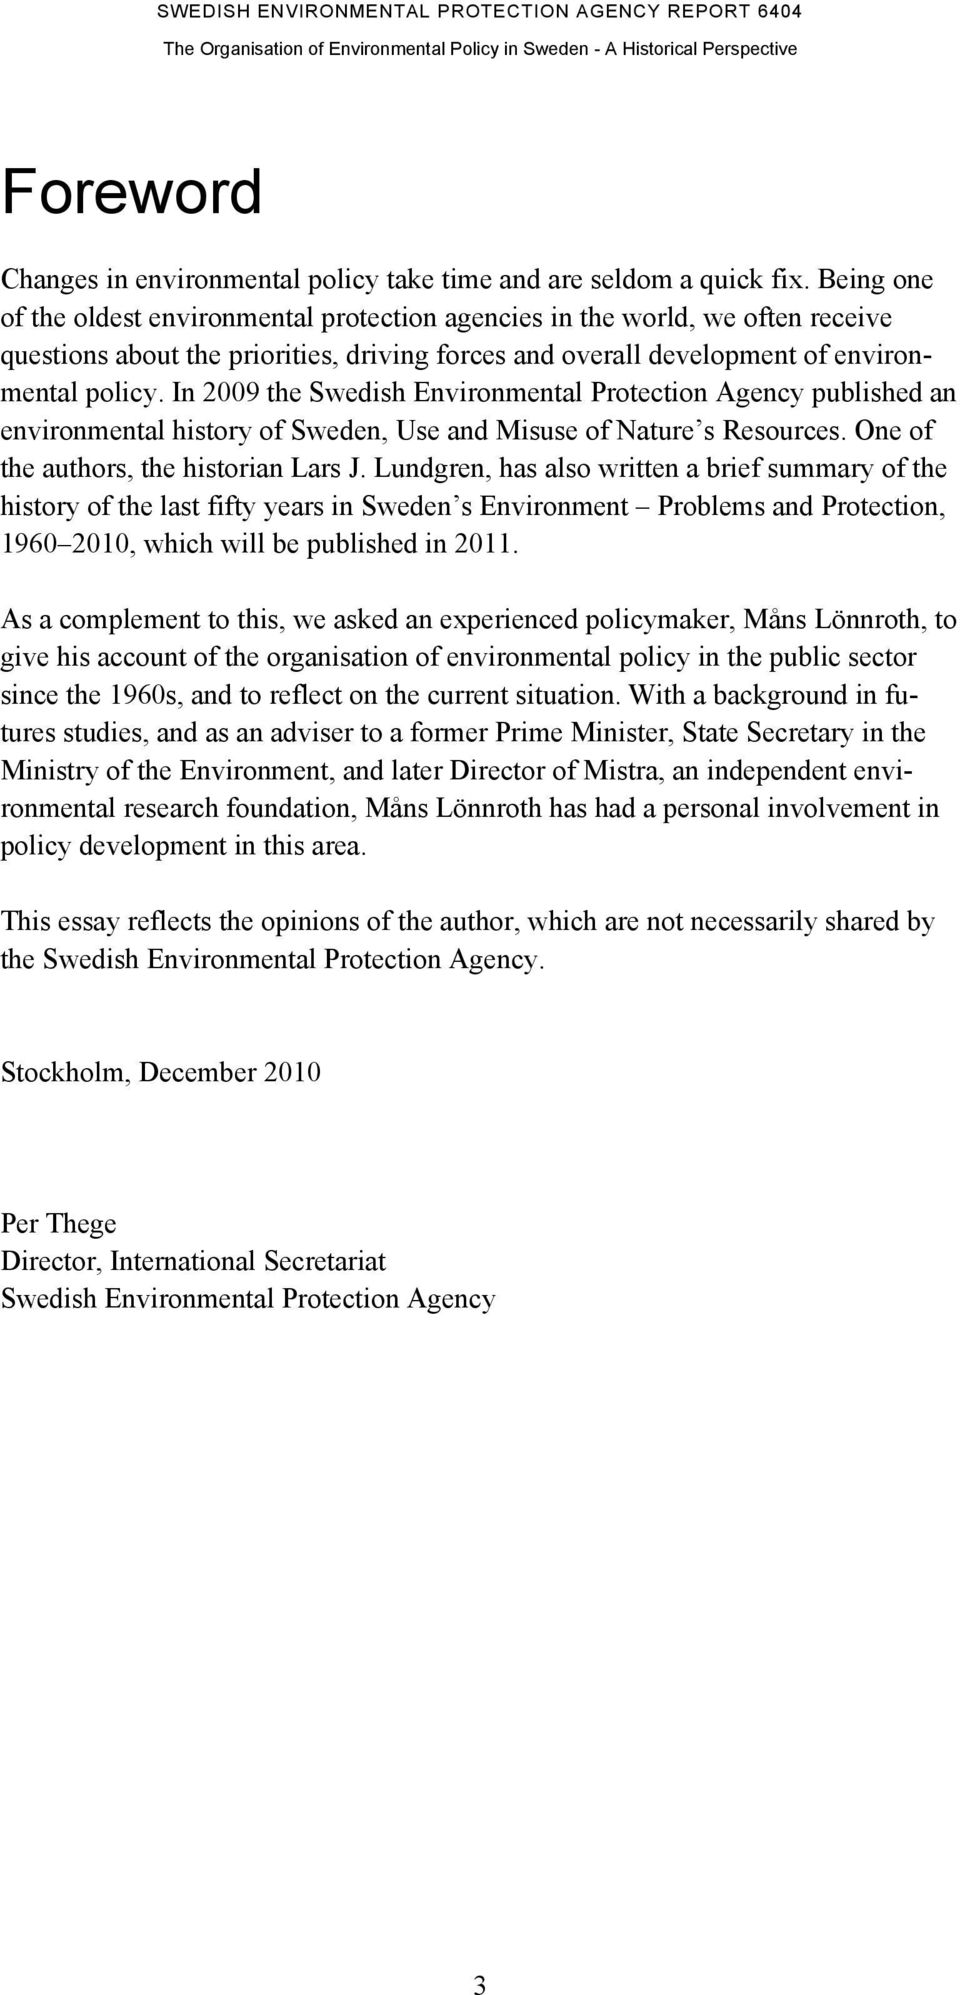 In 2009 the Swedish Environmental Protection Agency published an environmental history of Sweden, Use and Misuse of Nature s Resources. One of the authors, the historian Lars J.